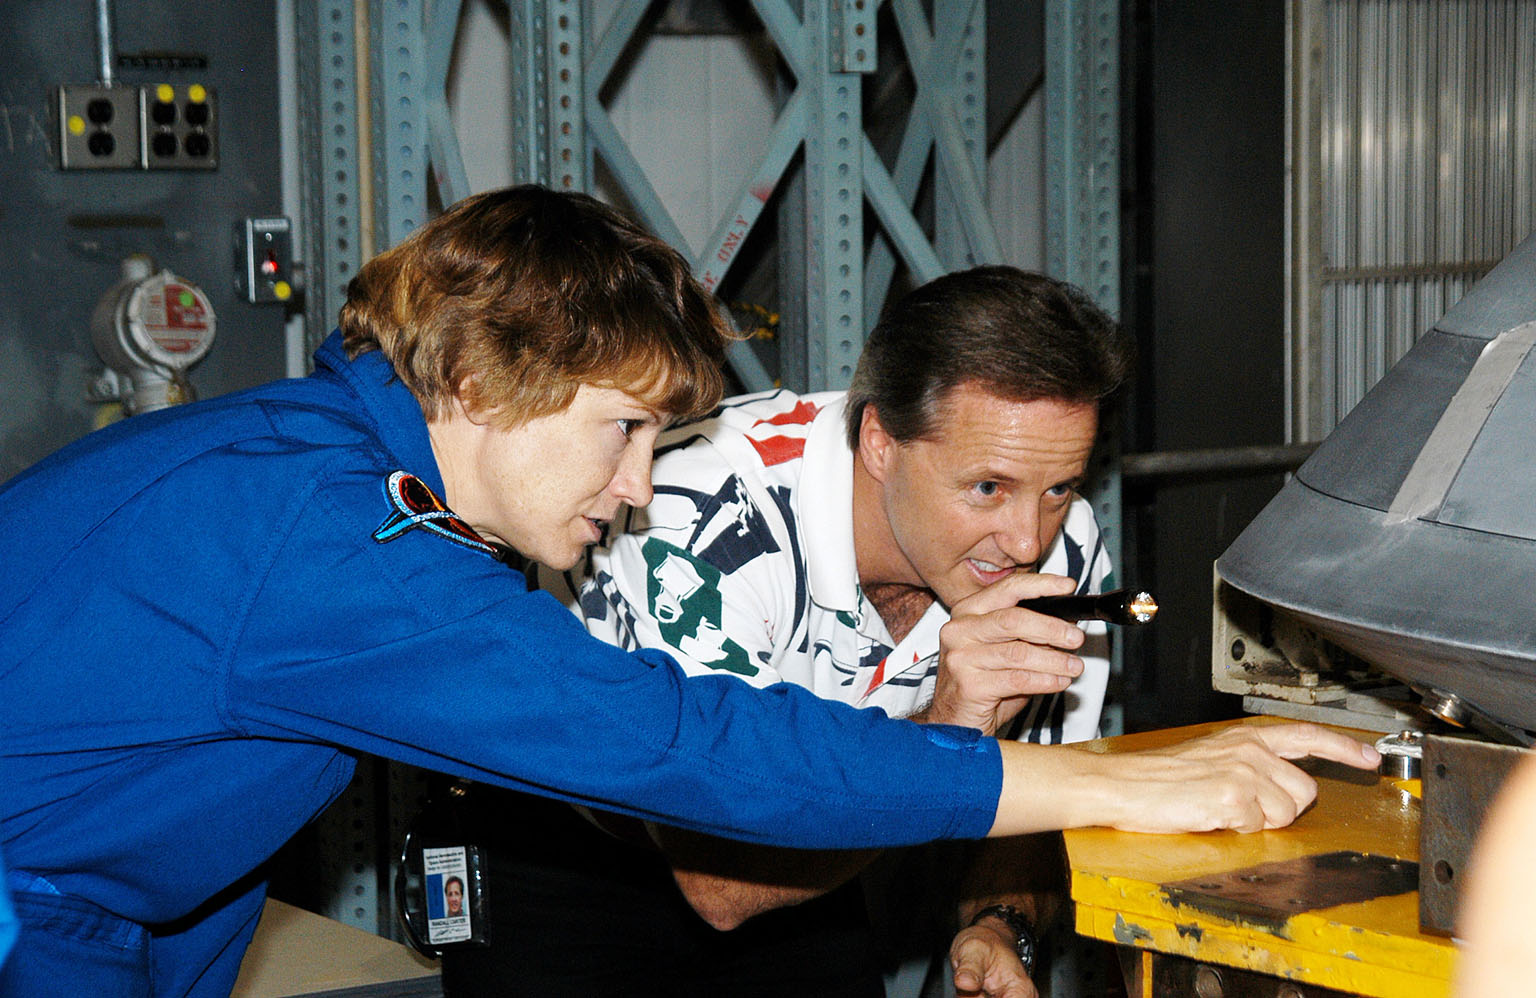 KENNEDY SPACE CENTER, FLA. - In the Orbiter Processing Facility, STS-114 Commander Eileen Collins examines part of the Atlantis nose cap with Randall Carter, who is with The Boeing Company. The nose cap was recently removed from Atlantis. The STS-114 crew is at KSC to take part in crew equipment and orbiter familiarization.